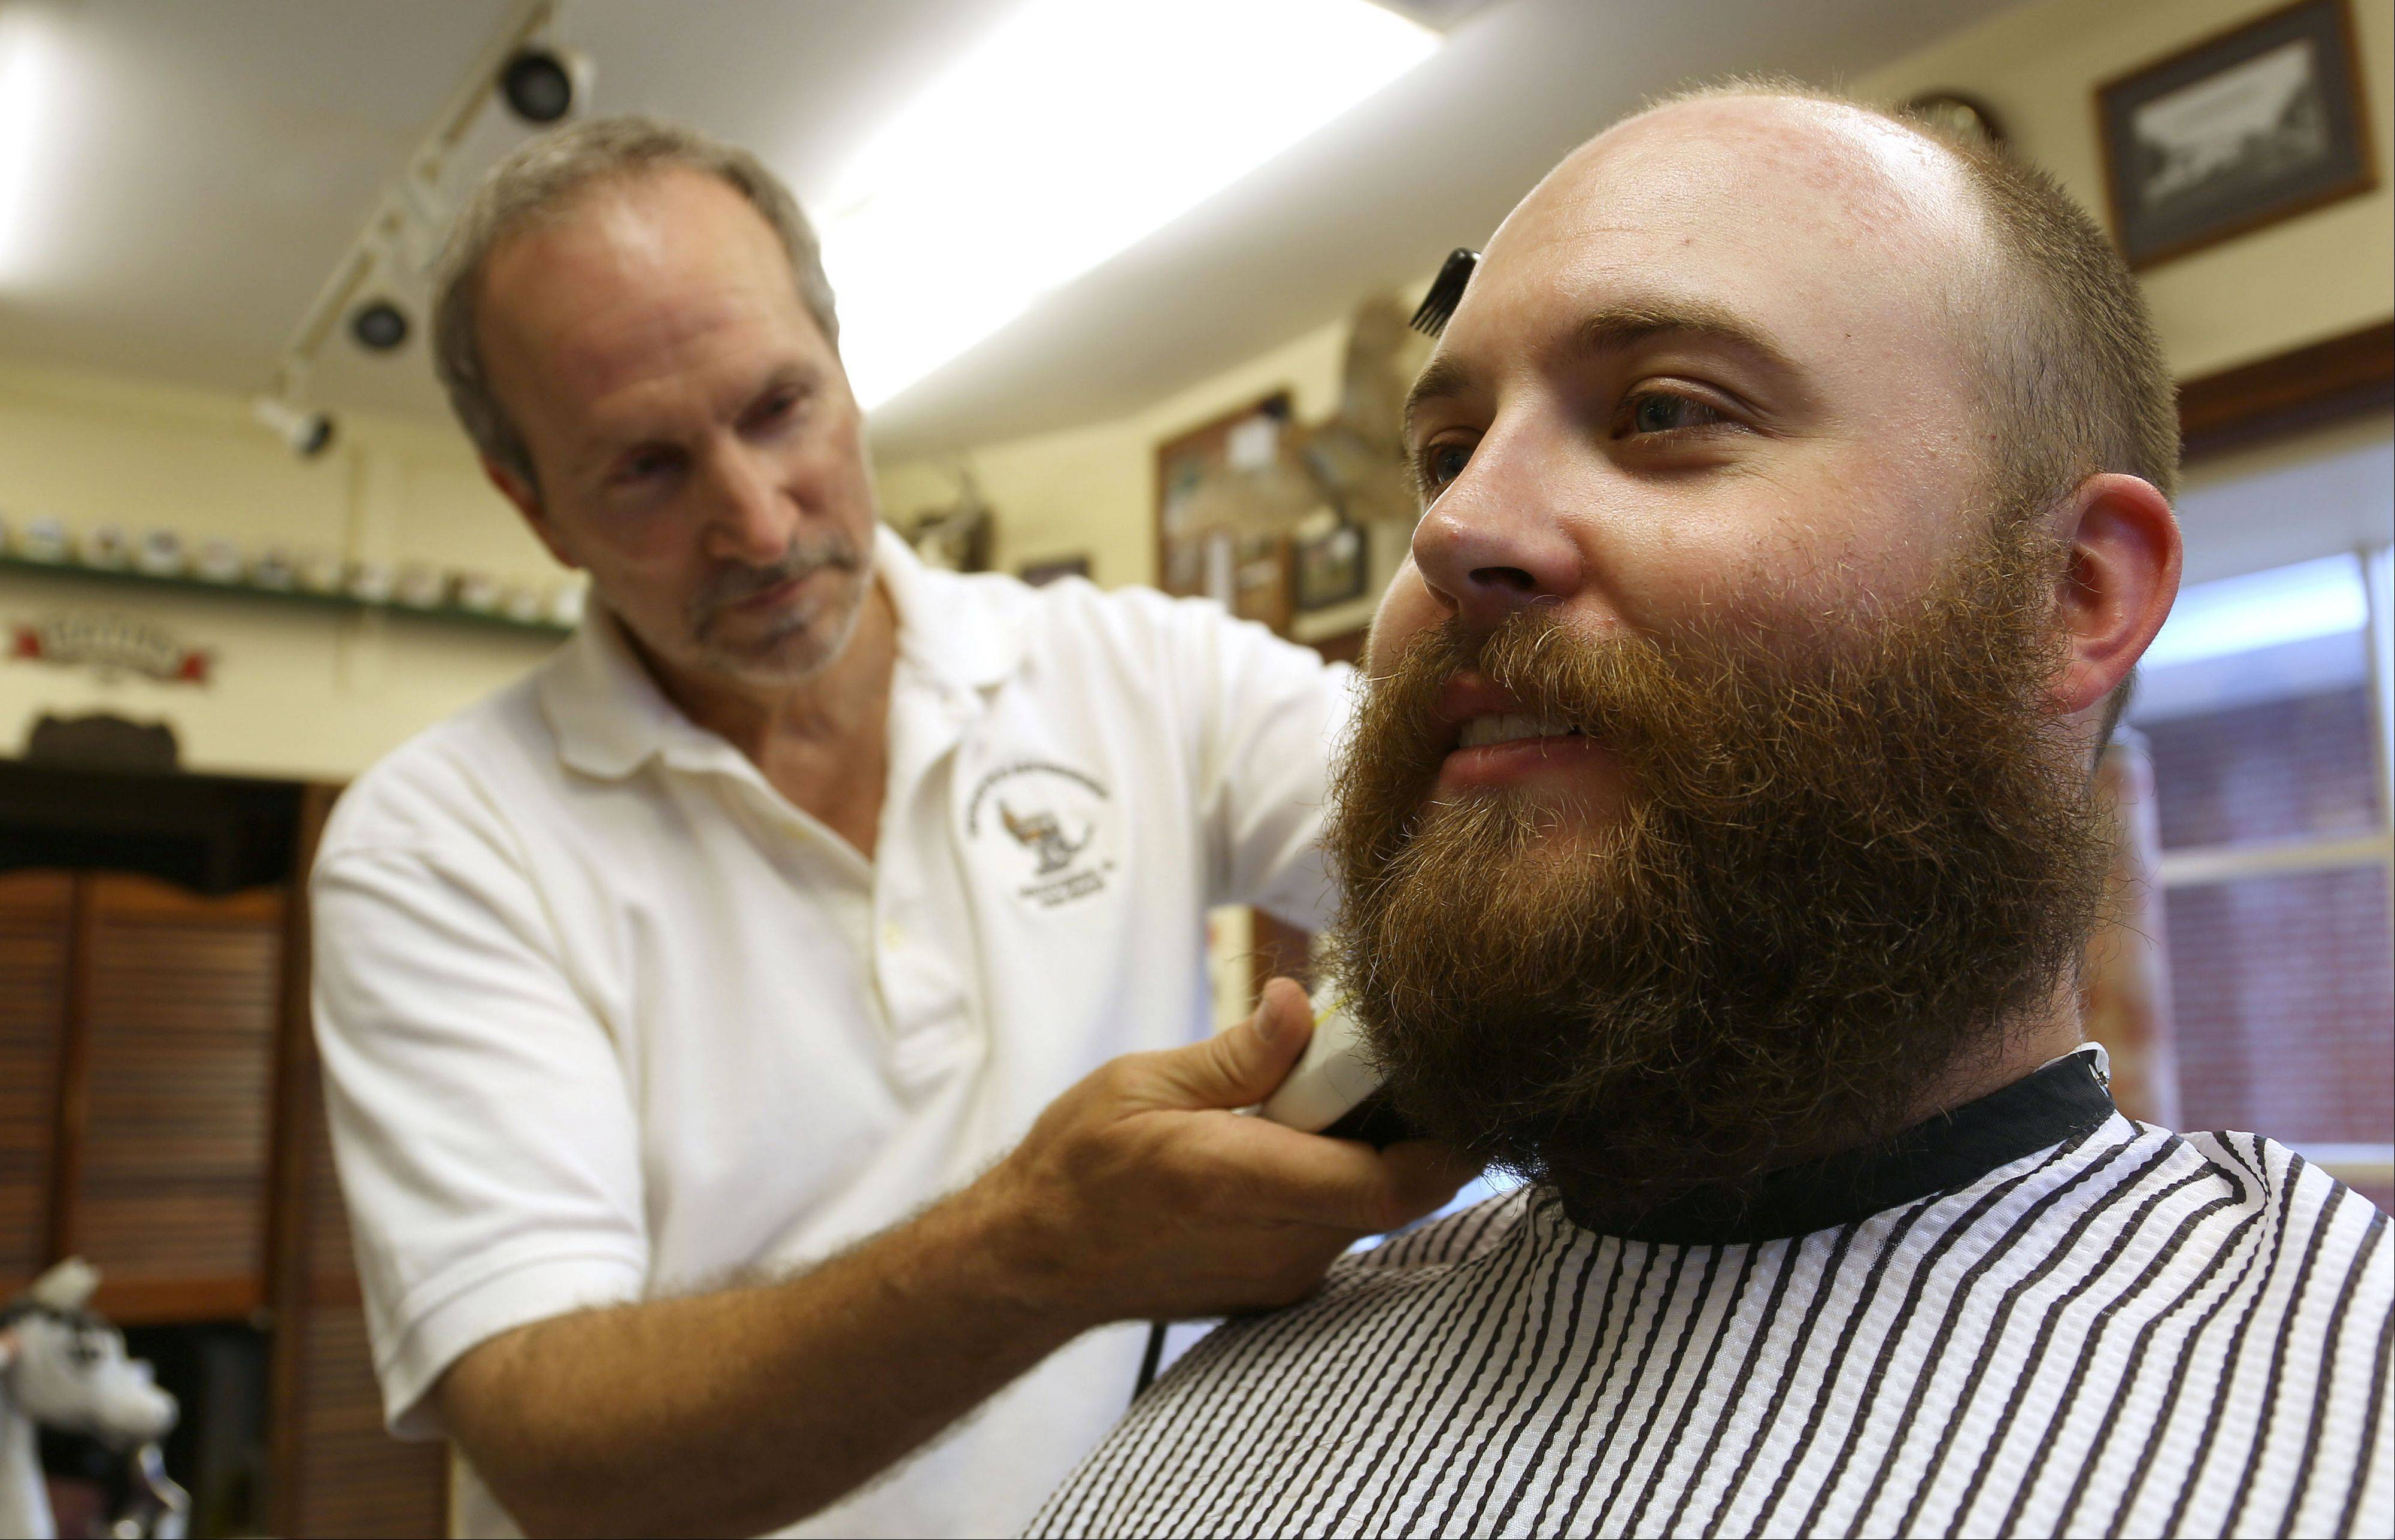 Patrick Ringel gets his playoff beard shaved at Tremonte's Barbershop in Wauconda Tuesday. For a donation of $10 people received a shave, a free 10oz. reusable stadium cup donated by Bulldogs Grill, and a complimentary ticket for a drink from Middleton's. A portion of the proceeds will be donated to the Wauconda Park District Youth Sports Program.